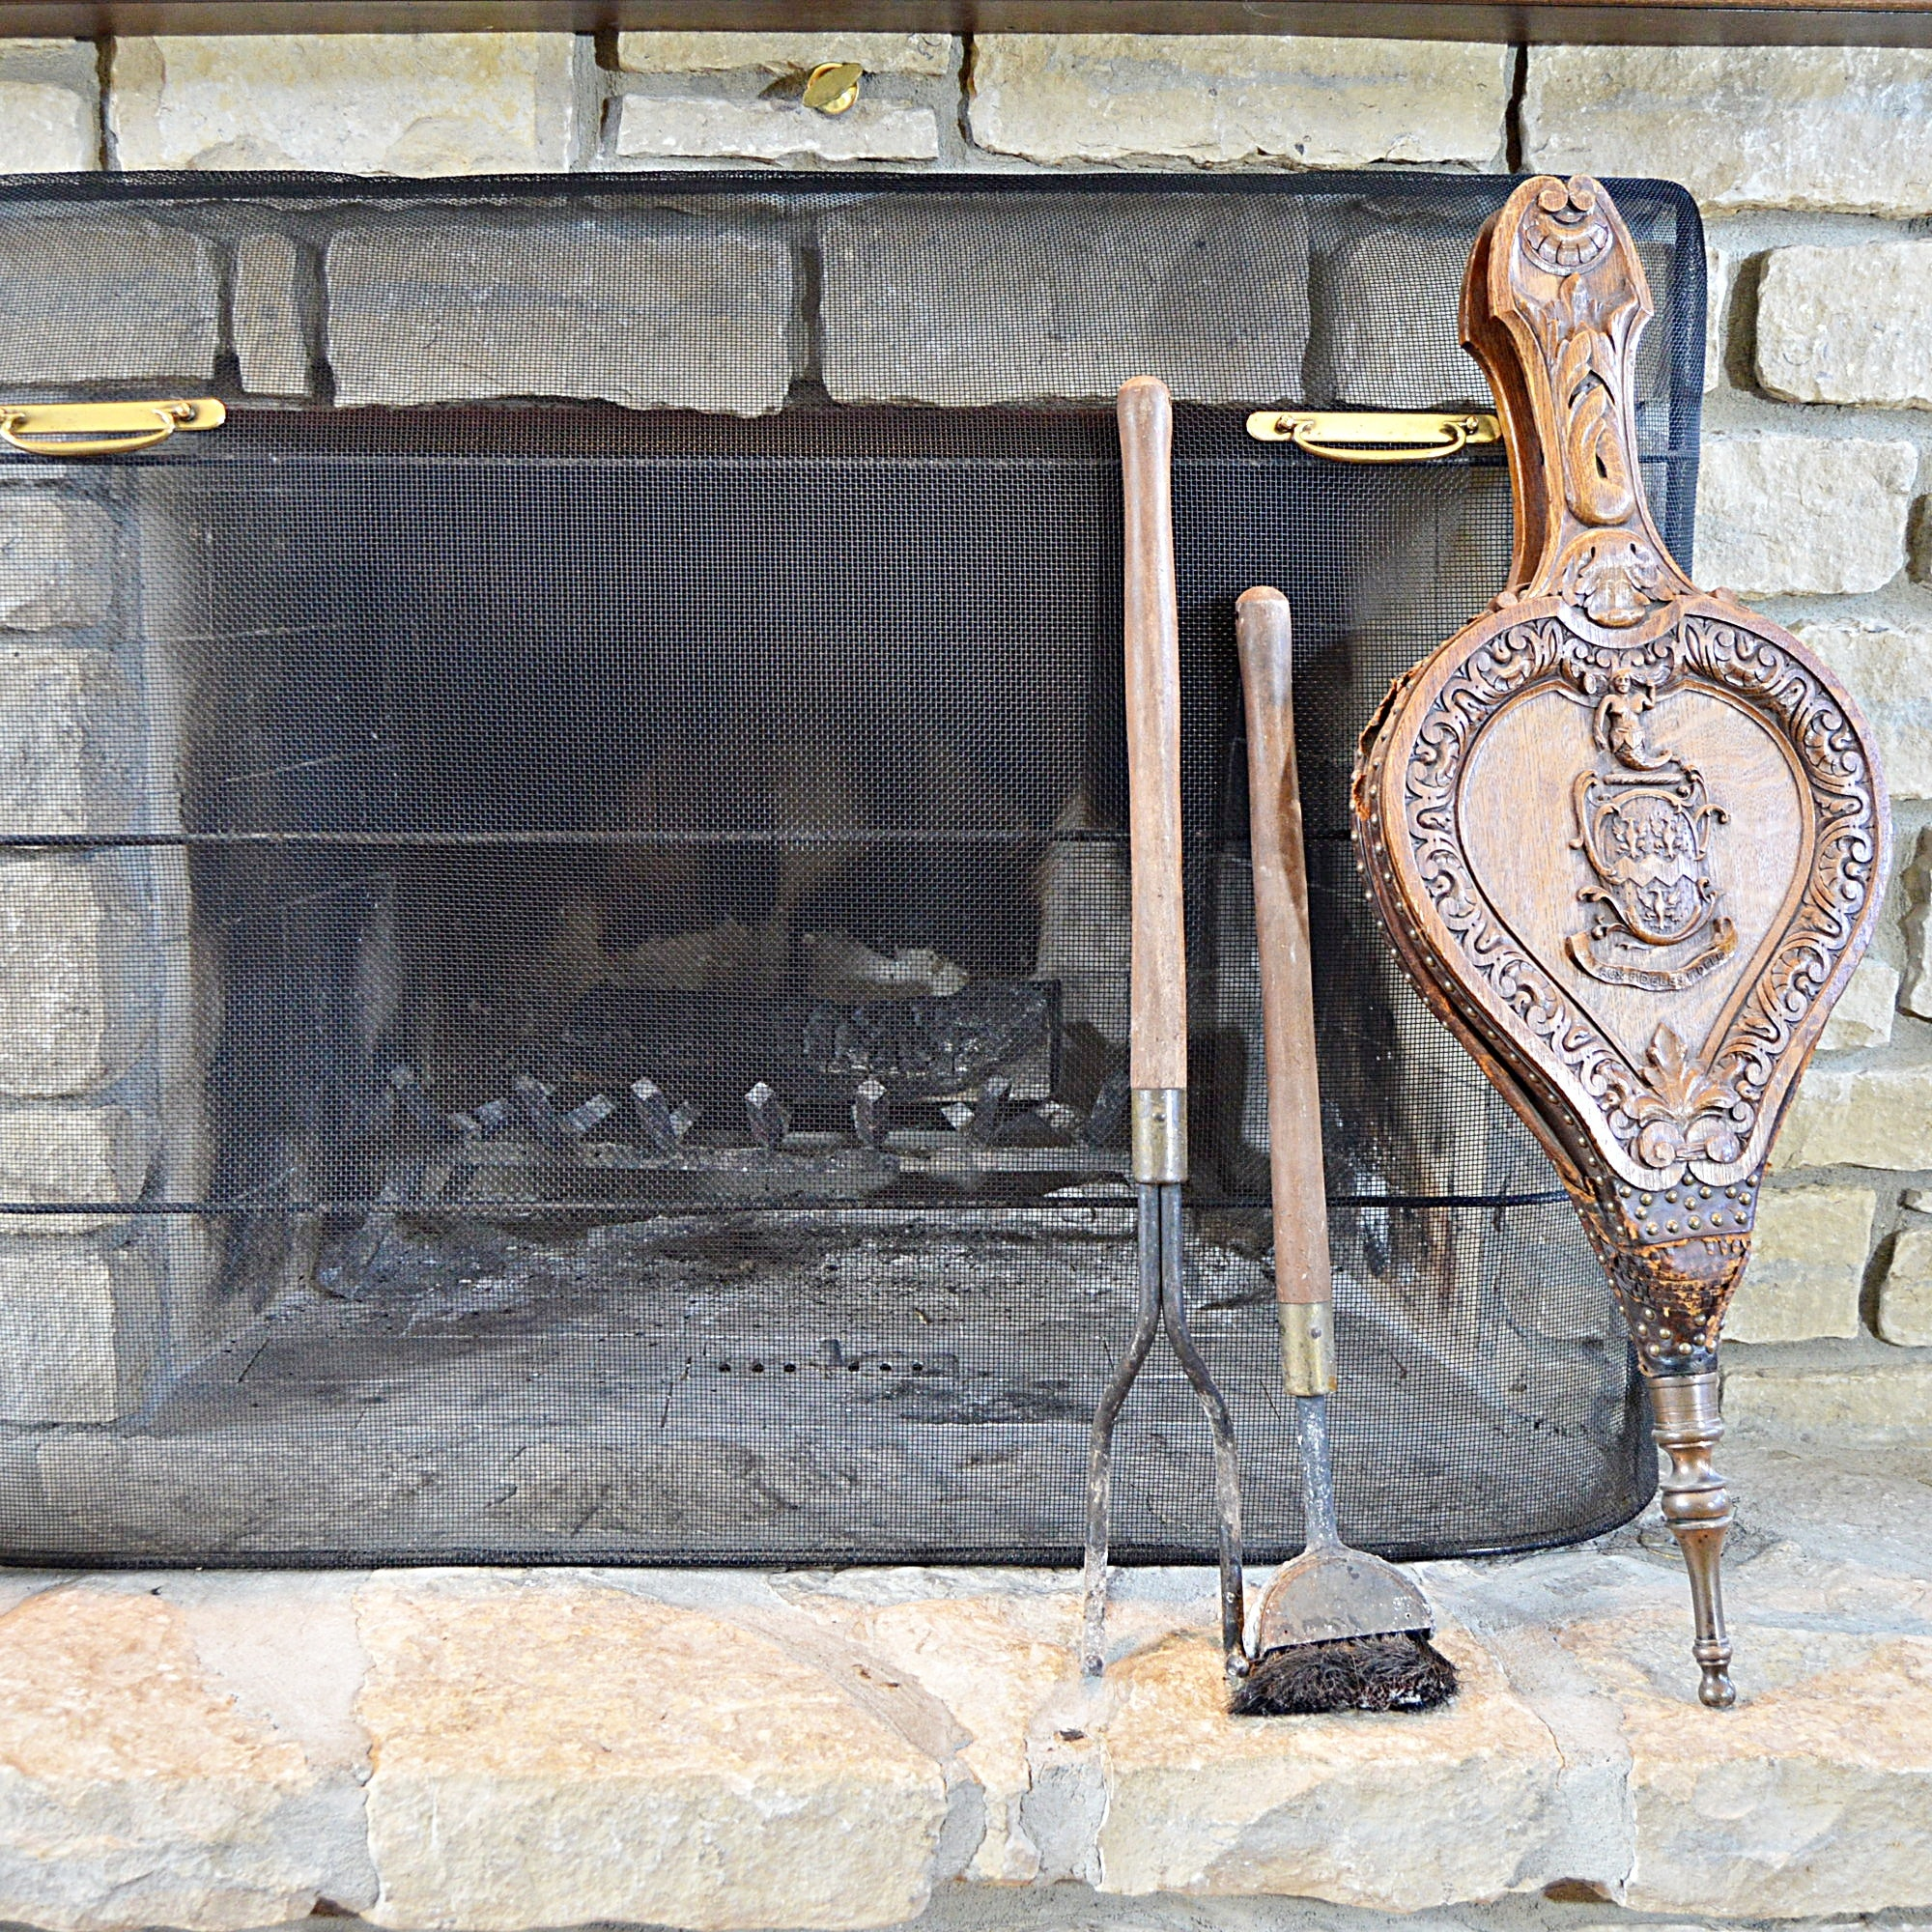 Fireplace Screen and Hearth Tools with Vintage Bellows